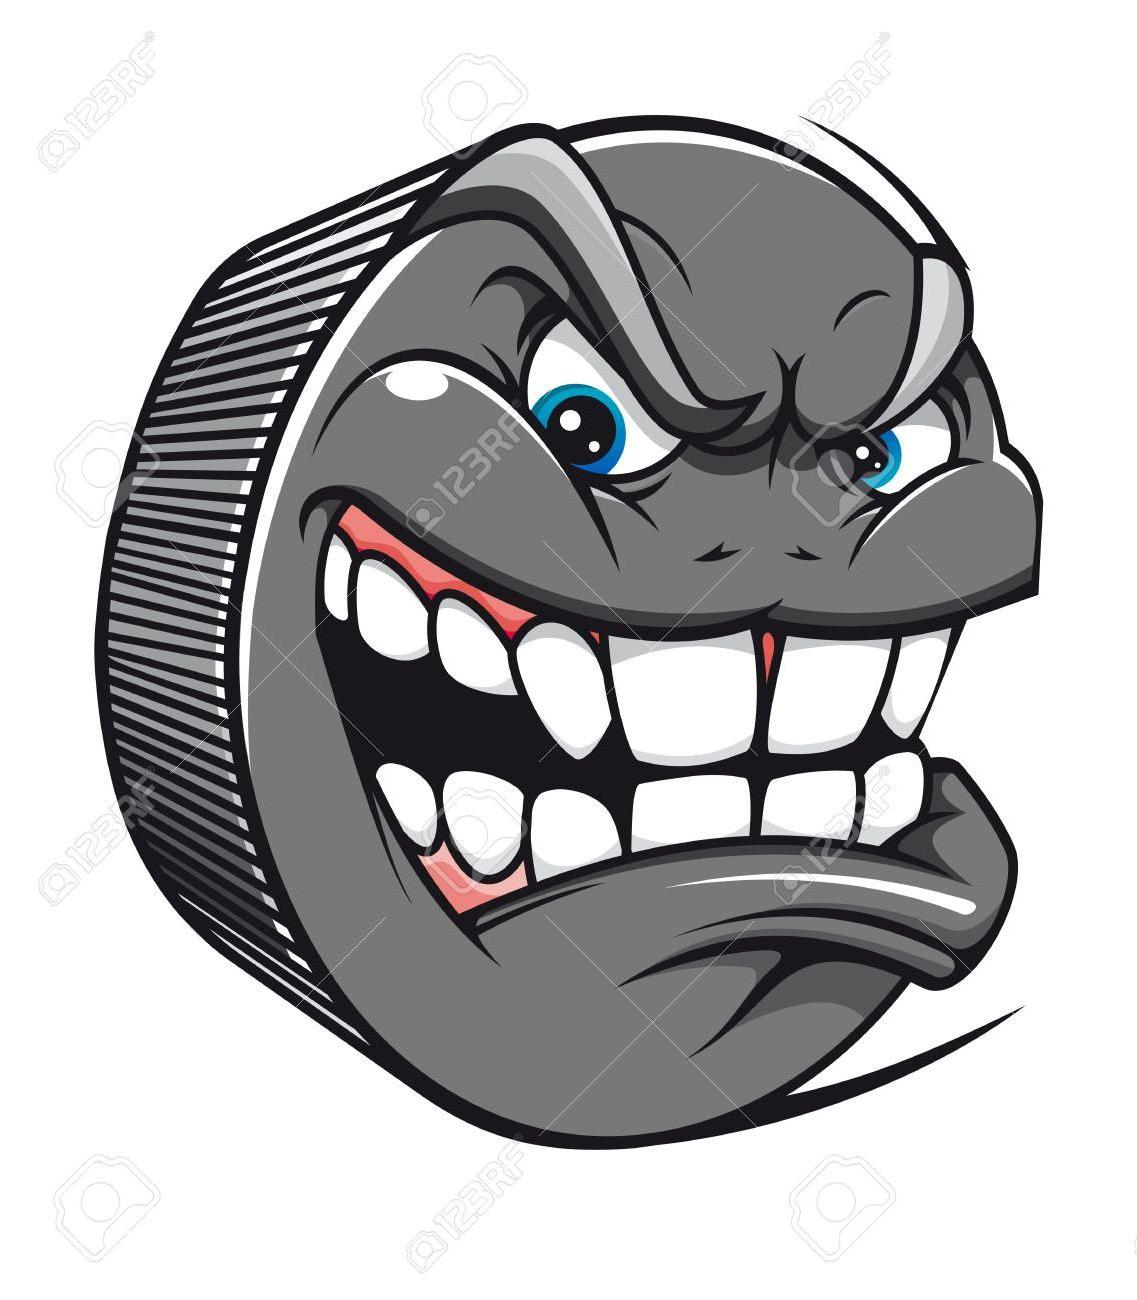 1137x1300 Unique Best Angry Hockey Puck Mascot In Cartoon Style Stock Vector